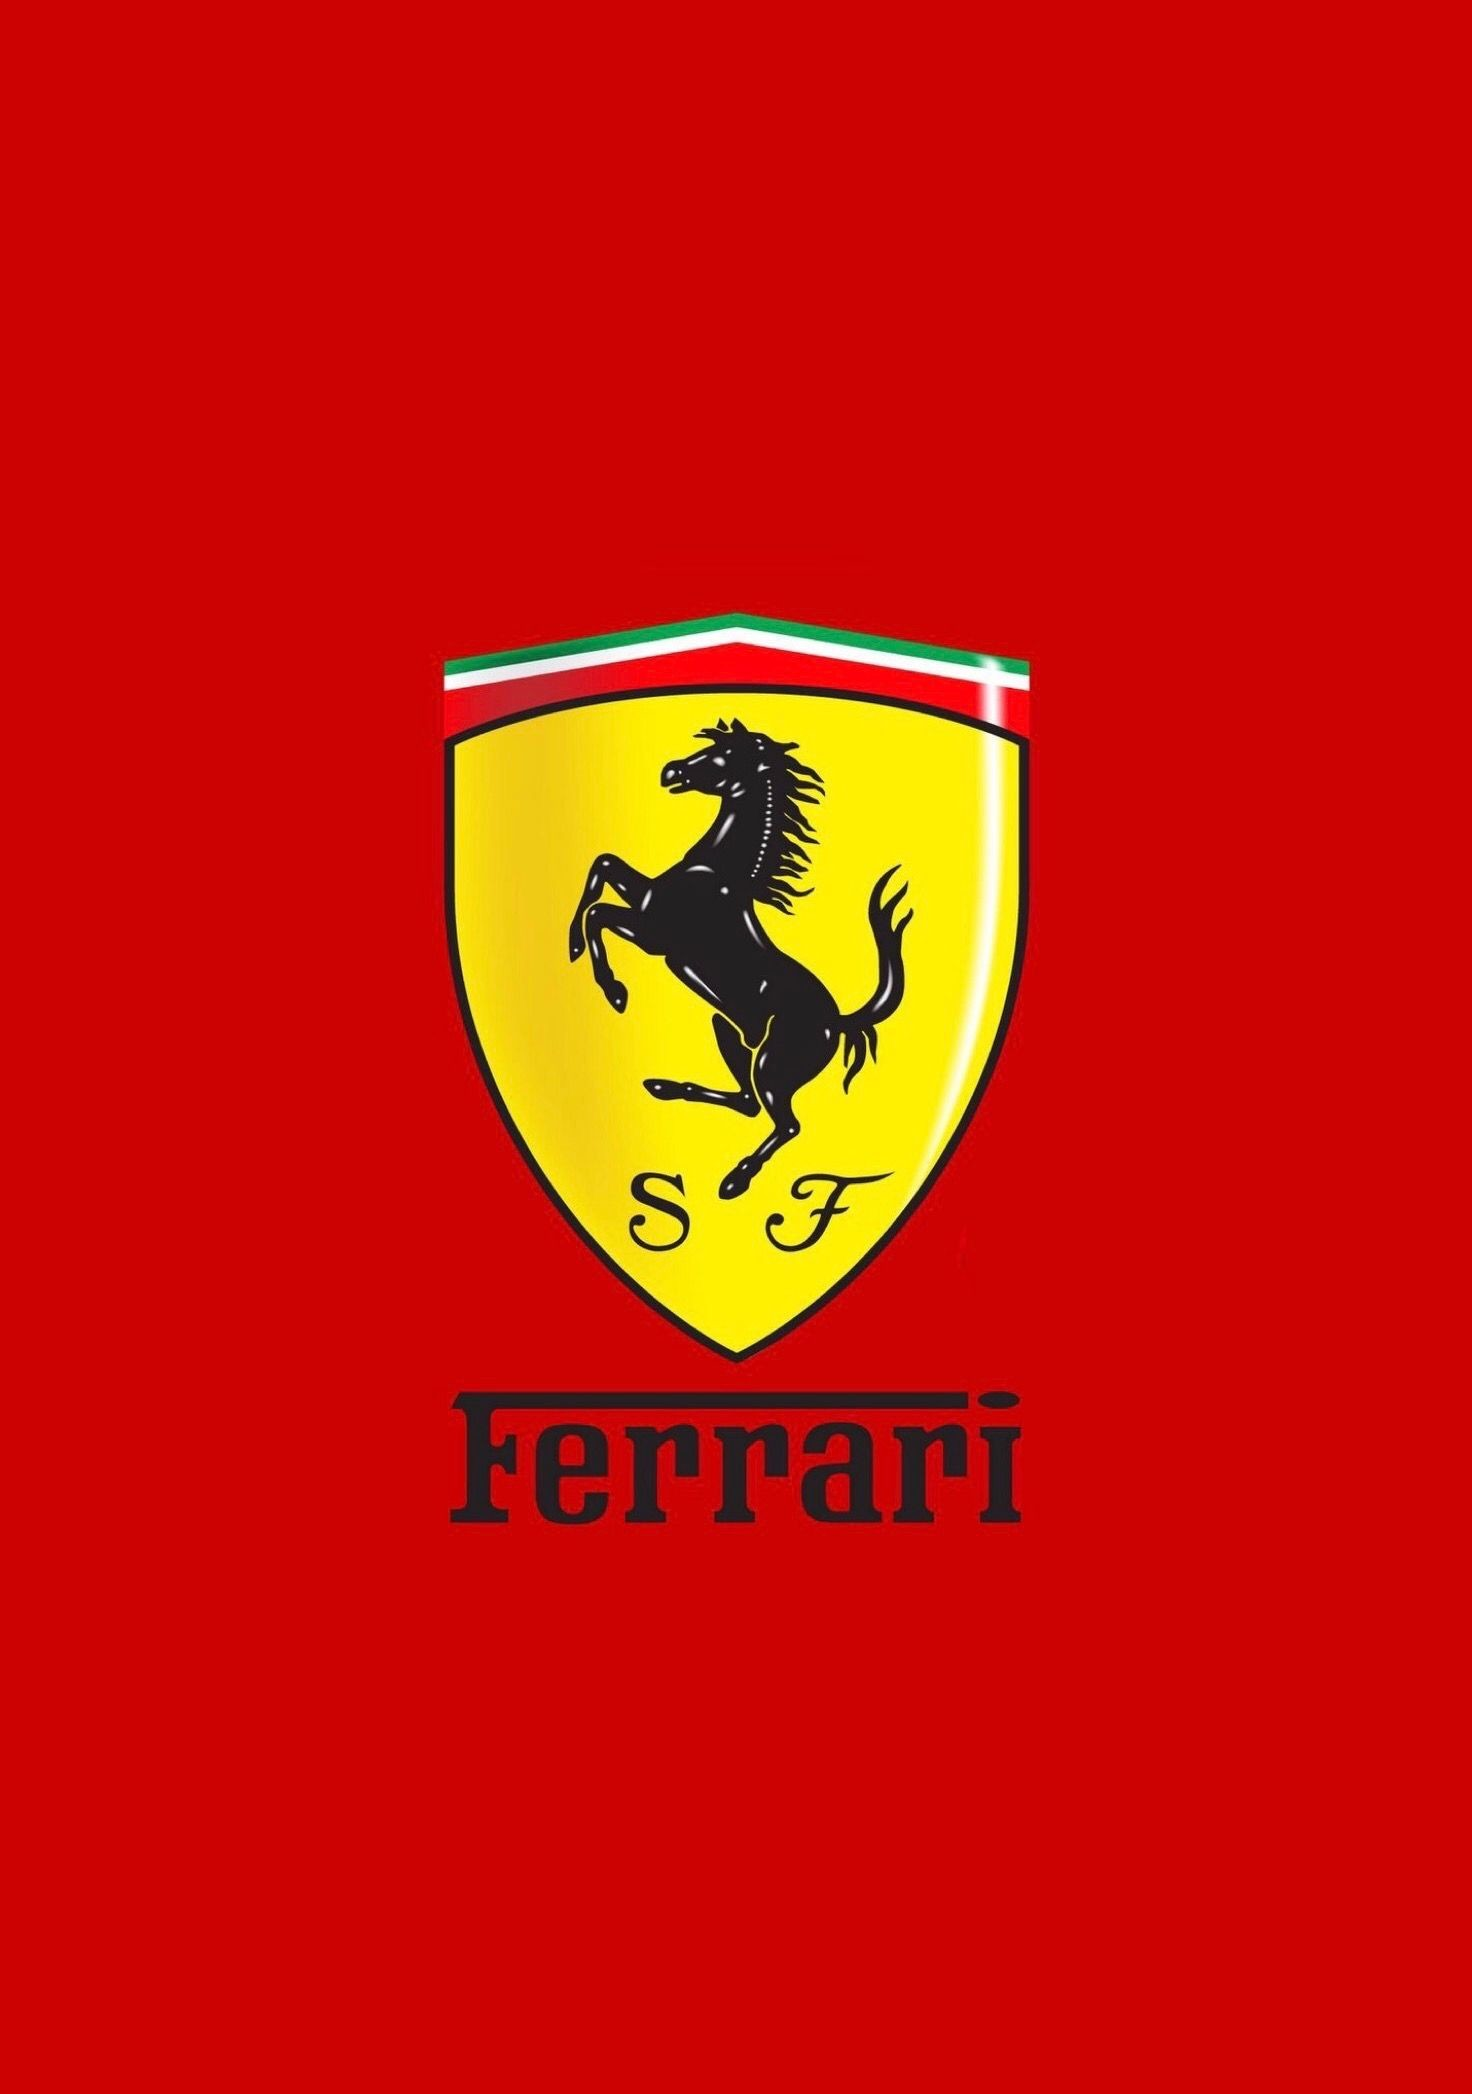 Res: 1472x2094, Ferrari Logo Wallpaper